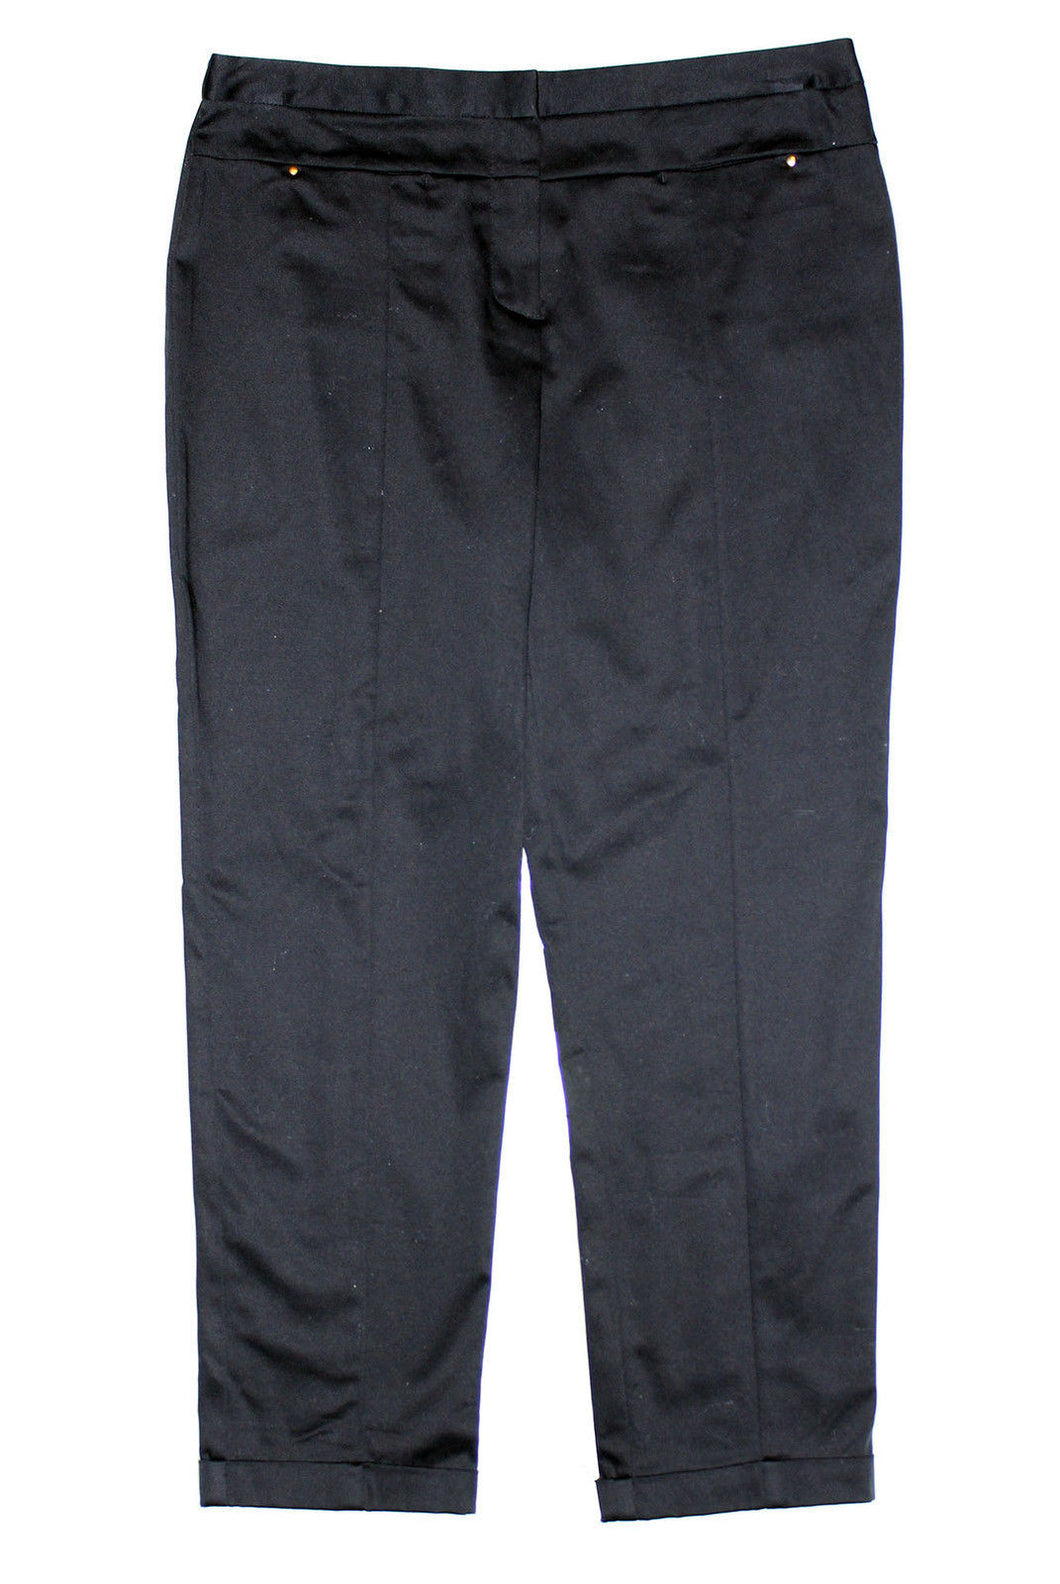 Style & Co Black Slim Leg Ankle Length Casual Pants